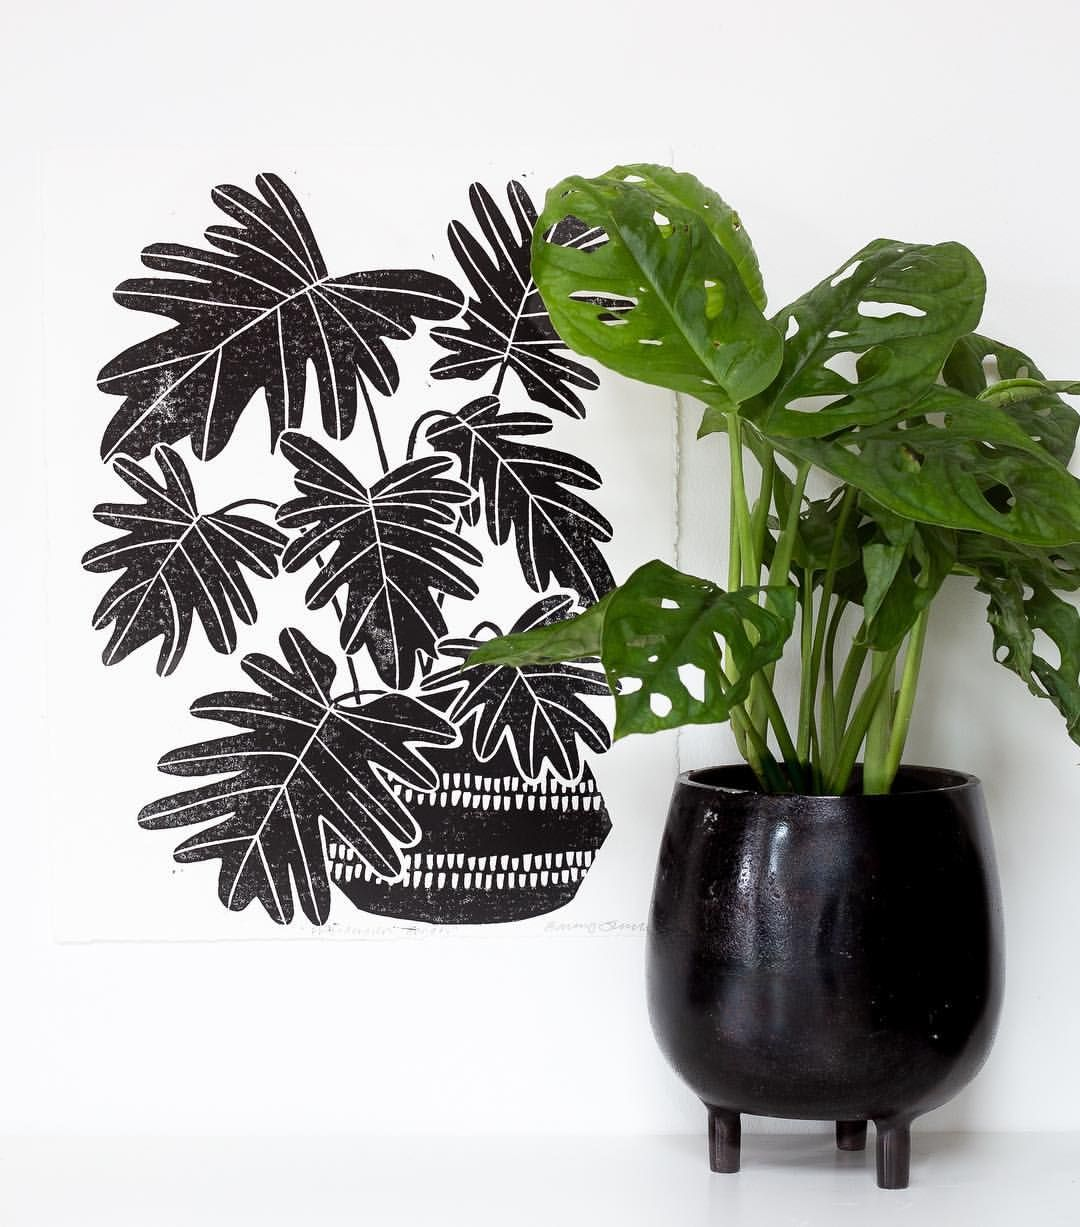 One of my personal favourites, my 'Philodendron Xanadu' print  Link